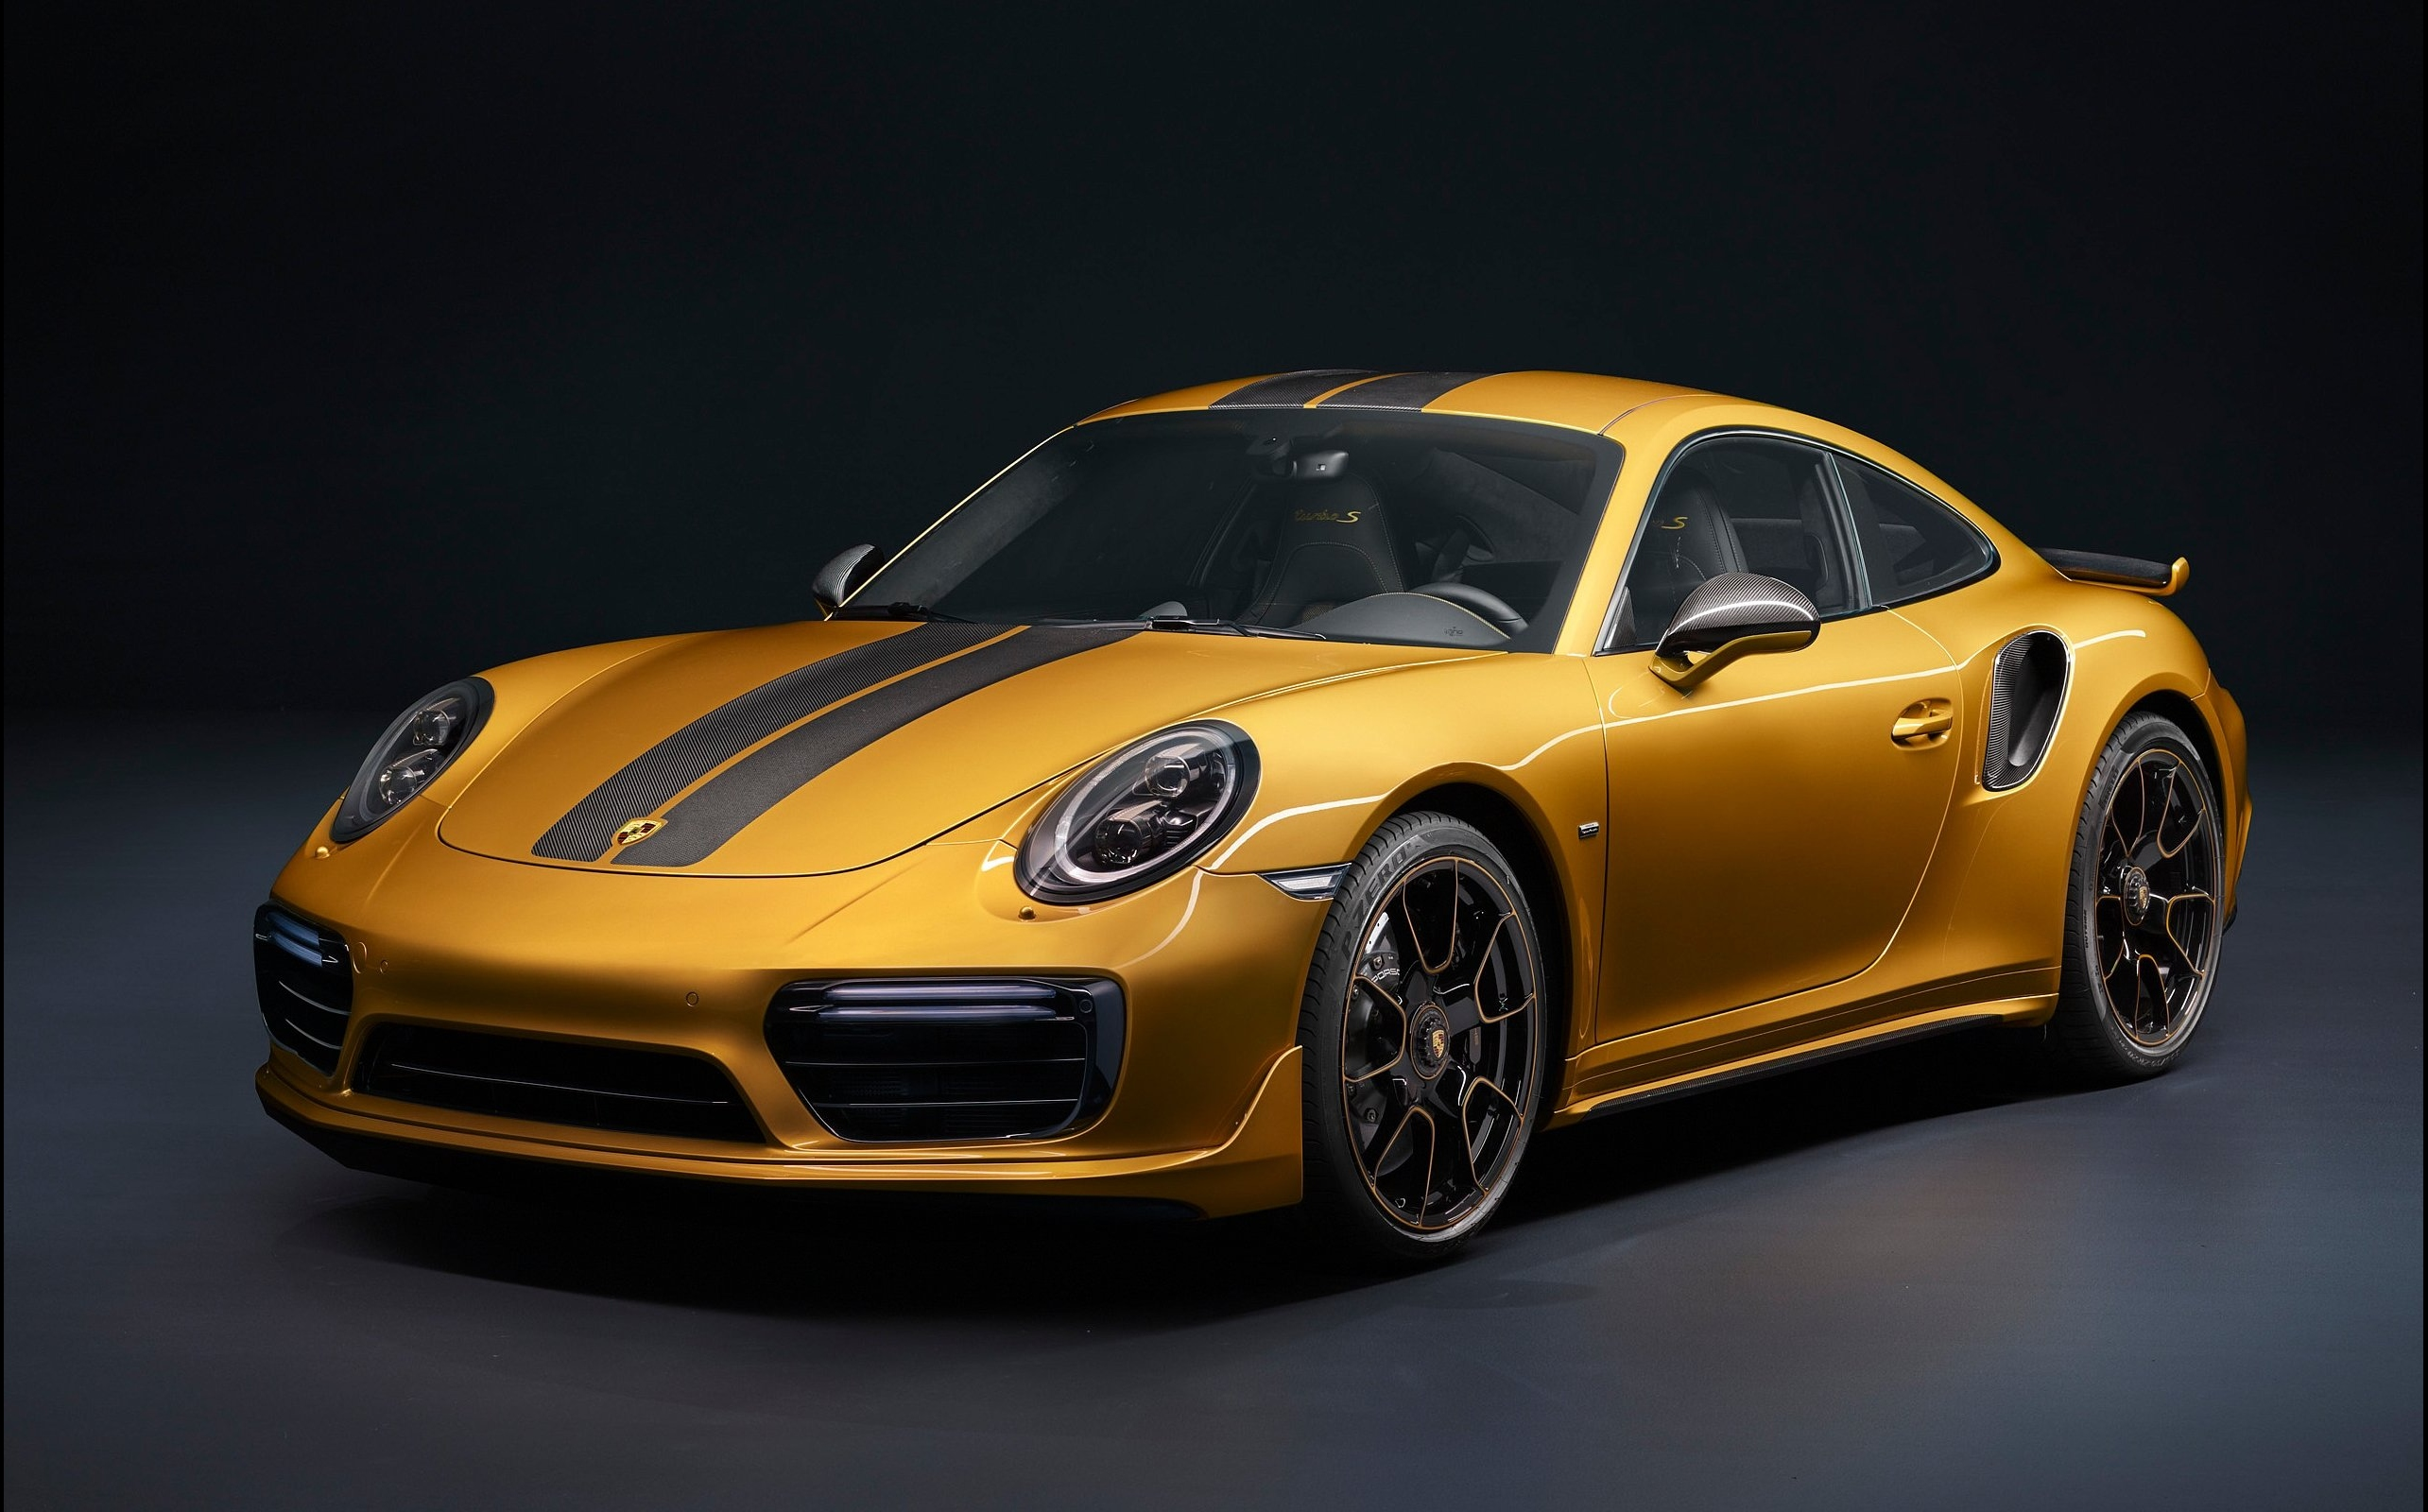 92 porsche 911 turbo hd wallpapers | background images - wallpaper abyss